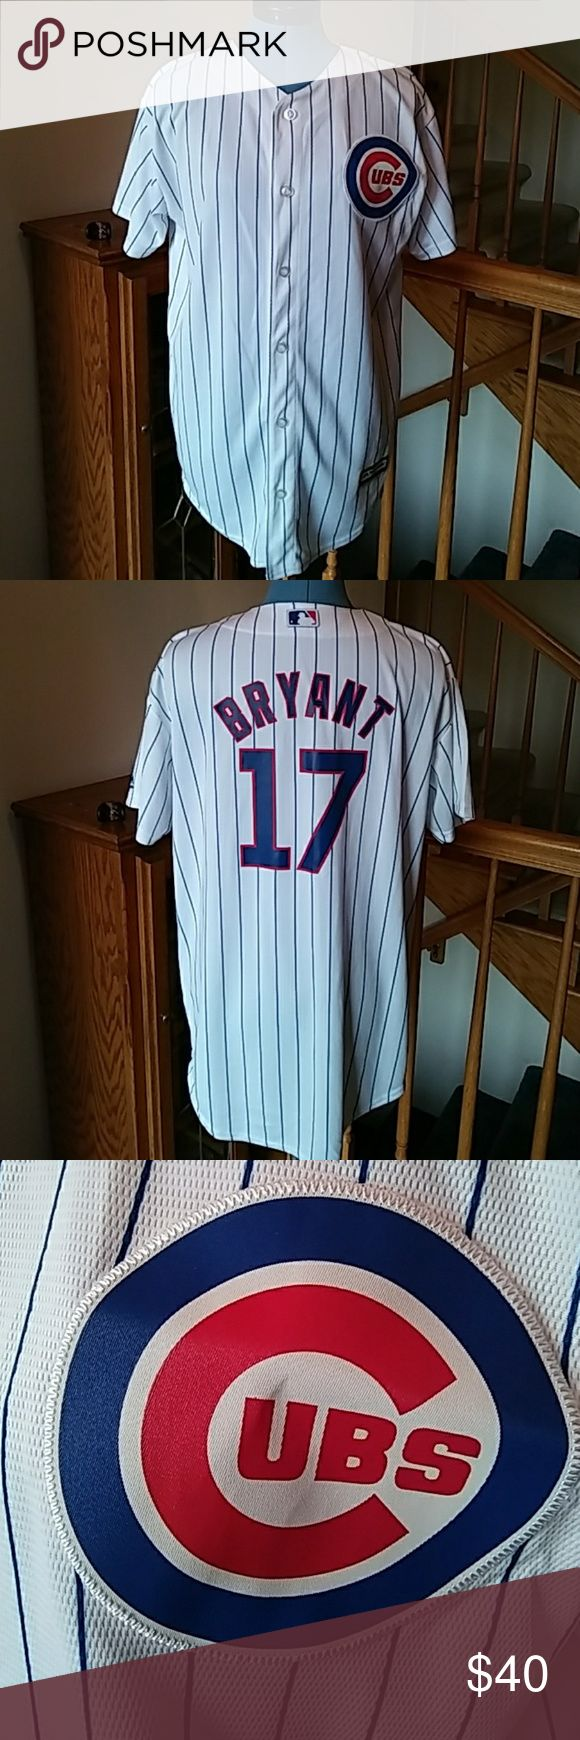 """Majestic Kris Bryant Cubs Jersey Youth XL Nearly new Cubs jersey, only worn once. Youth size XL, which is veeery generous. I'm 5'2"""" and this jersey comes down to mid-thigh on me. Logo Patch is sewn on, name and number are printed on. Go Cubs Go! Majestic Tops Tees - Short Sleeve"""